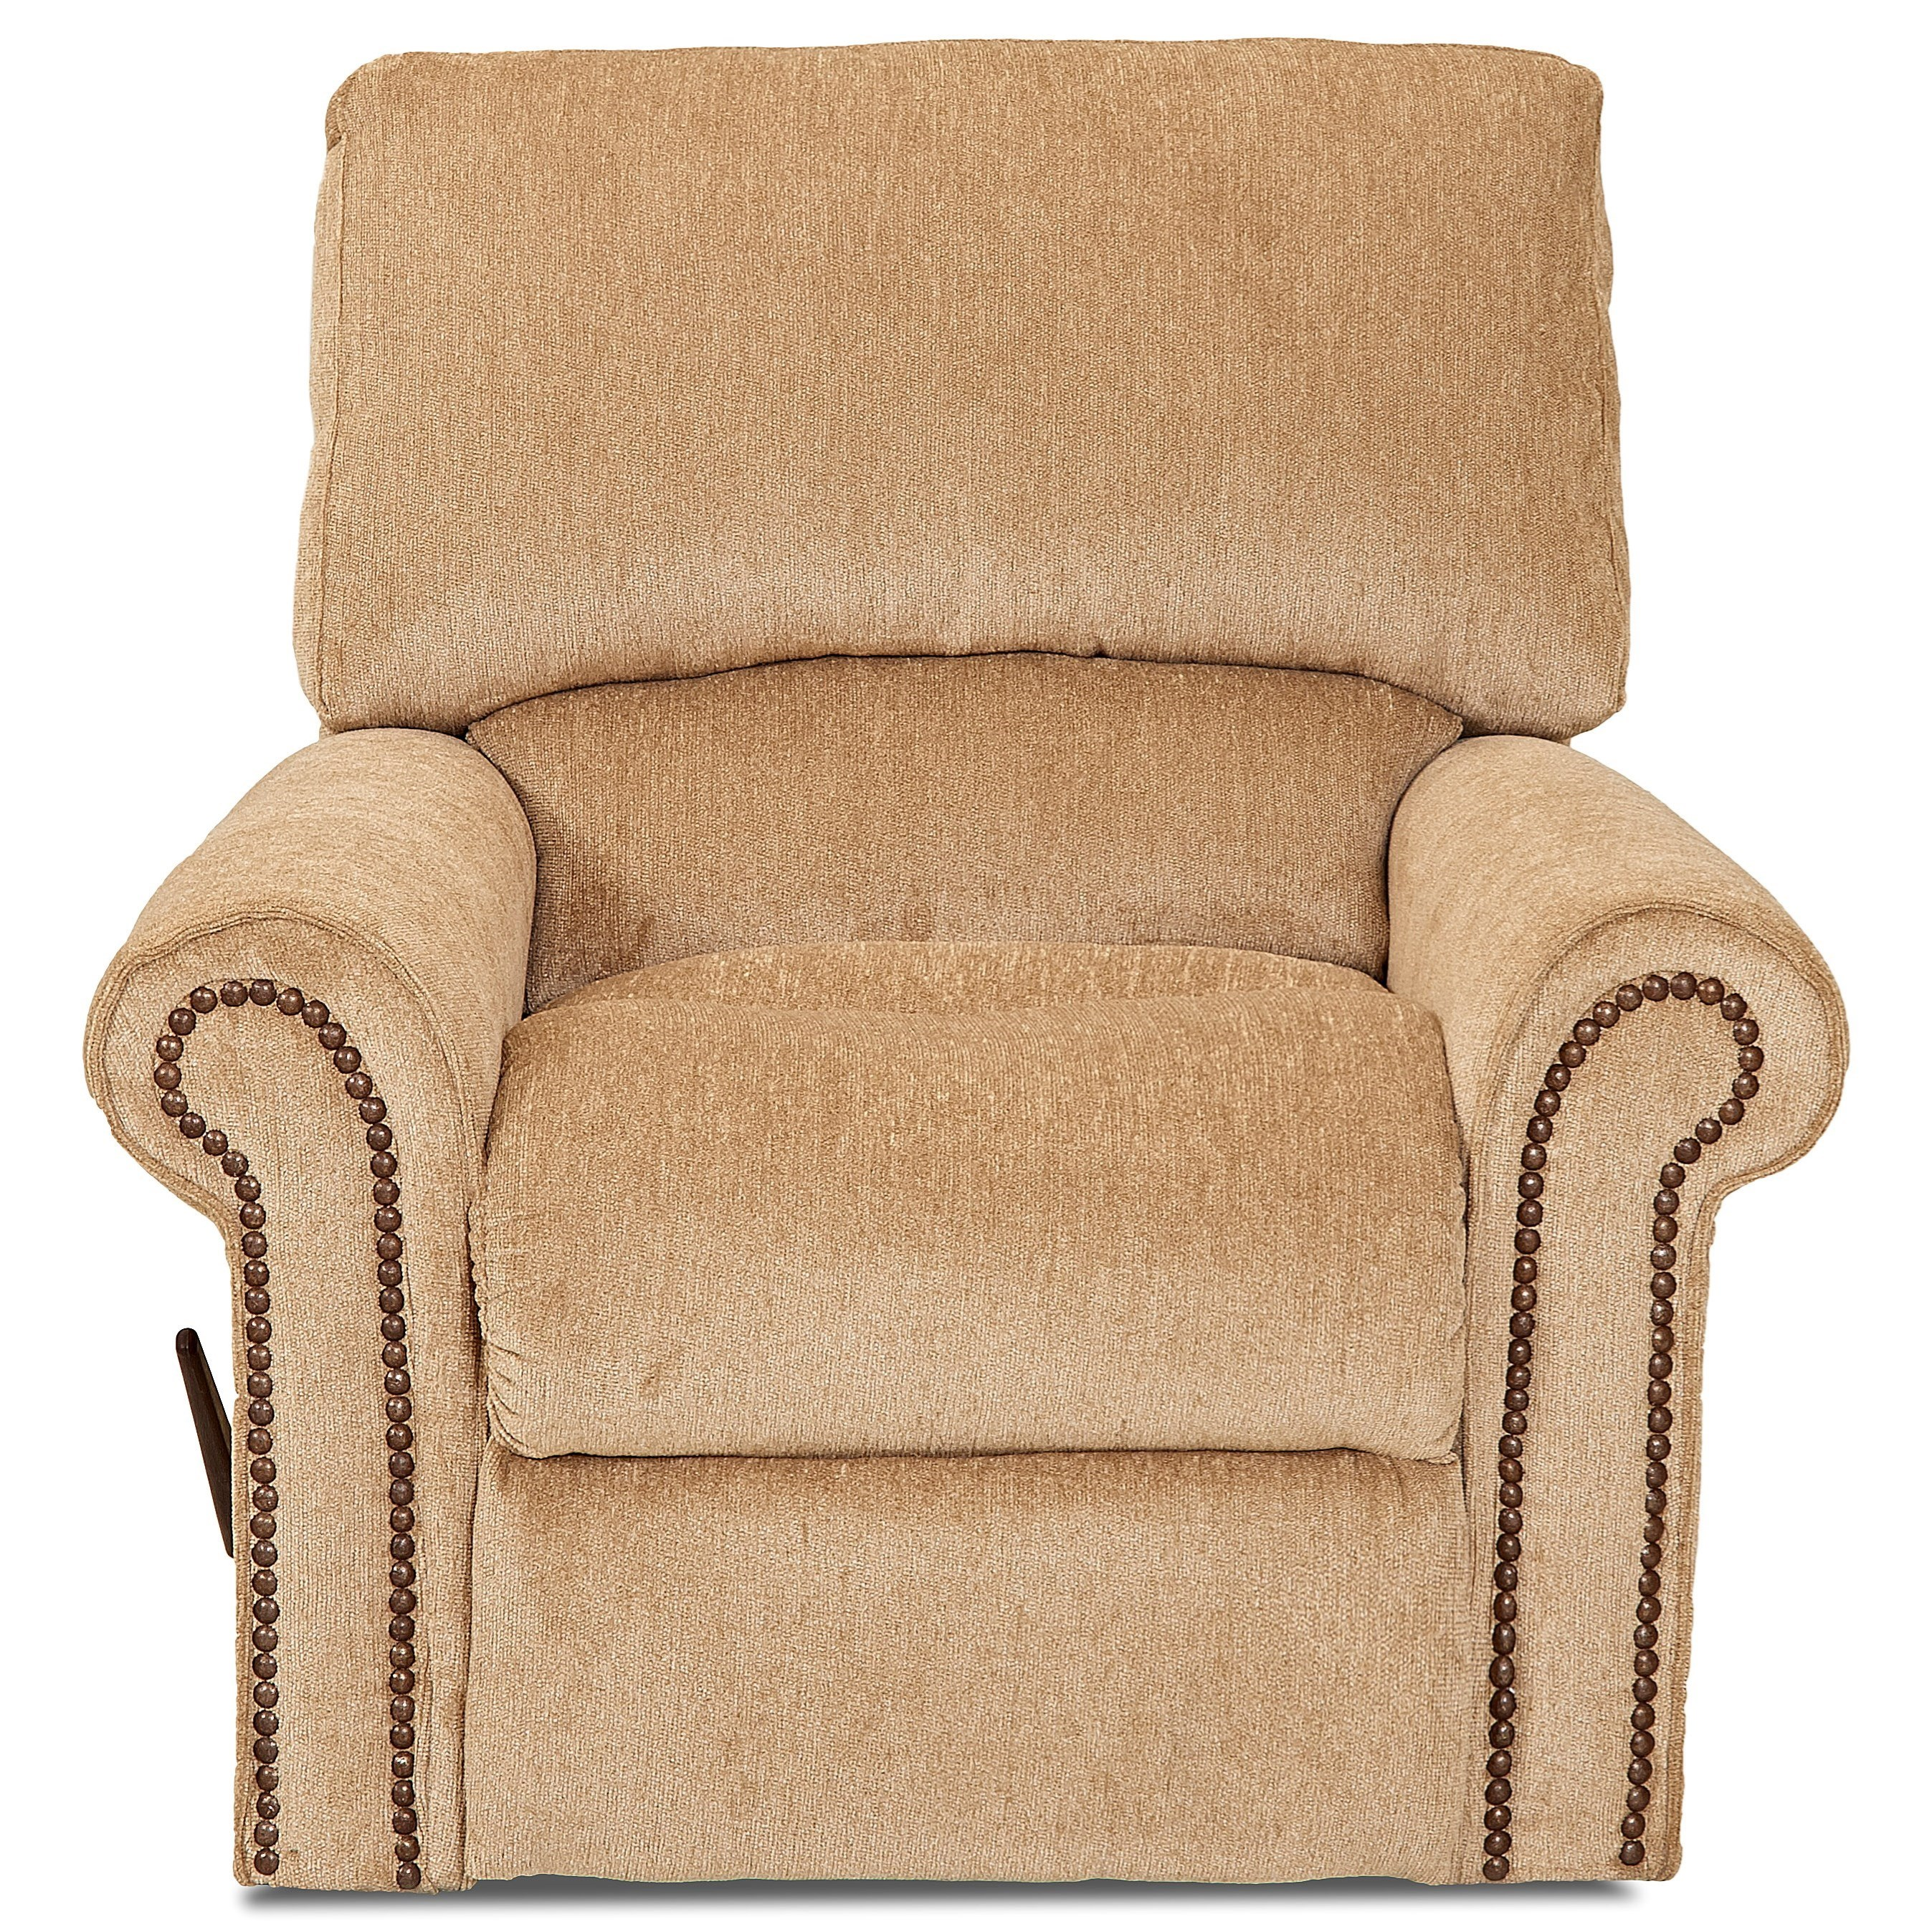 Swivel Rocker Recliner with Rolled Arms and Nailheads